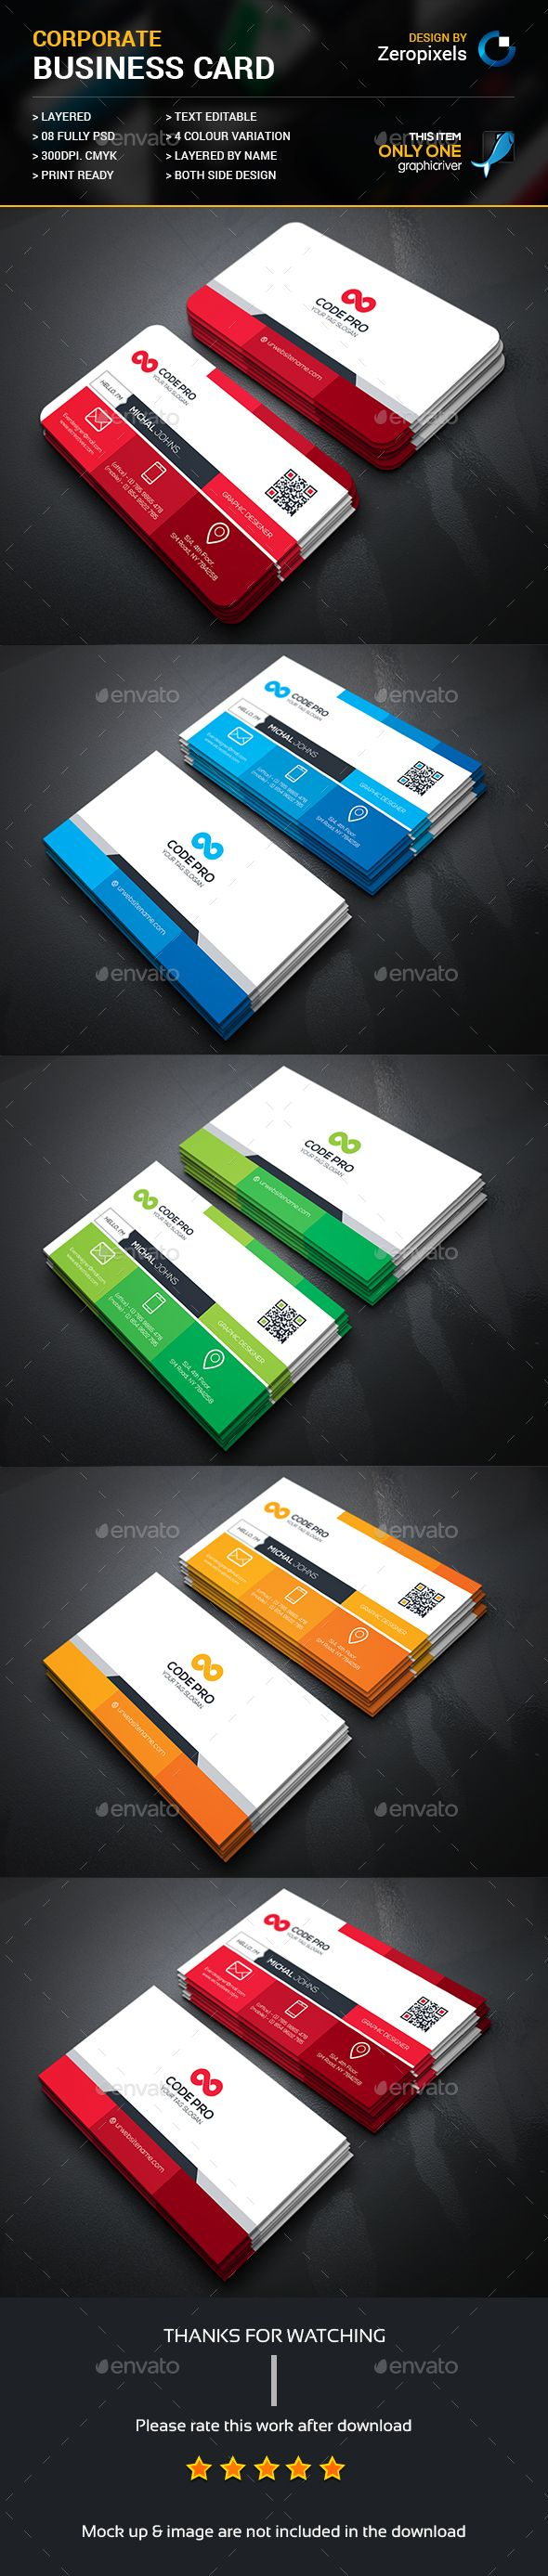 Best Visiting Card Templates Ideas On Pinterest Visiting - Buy business card template